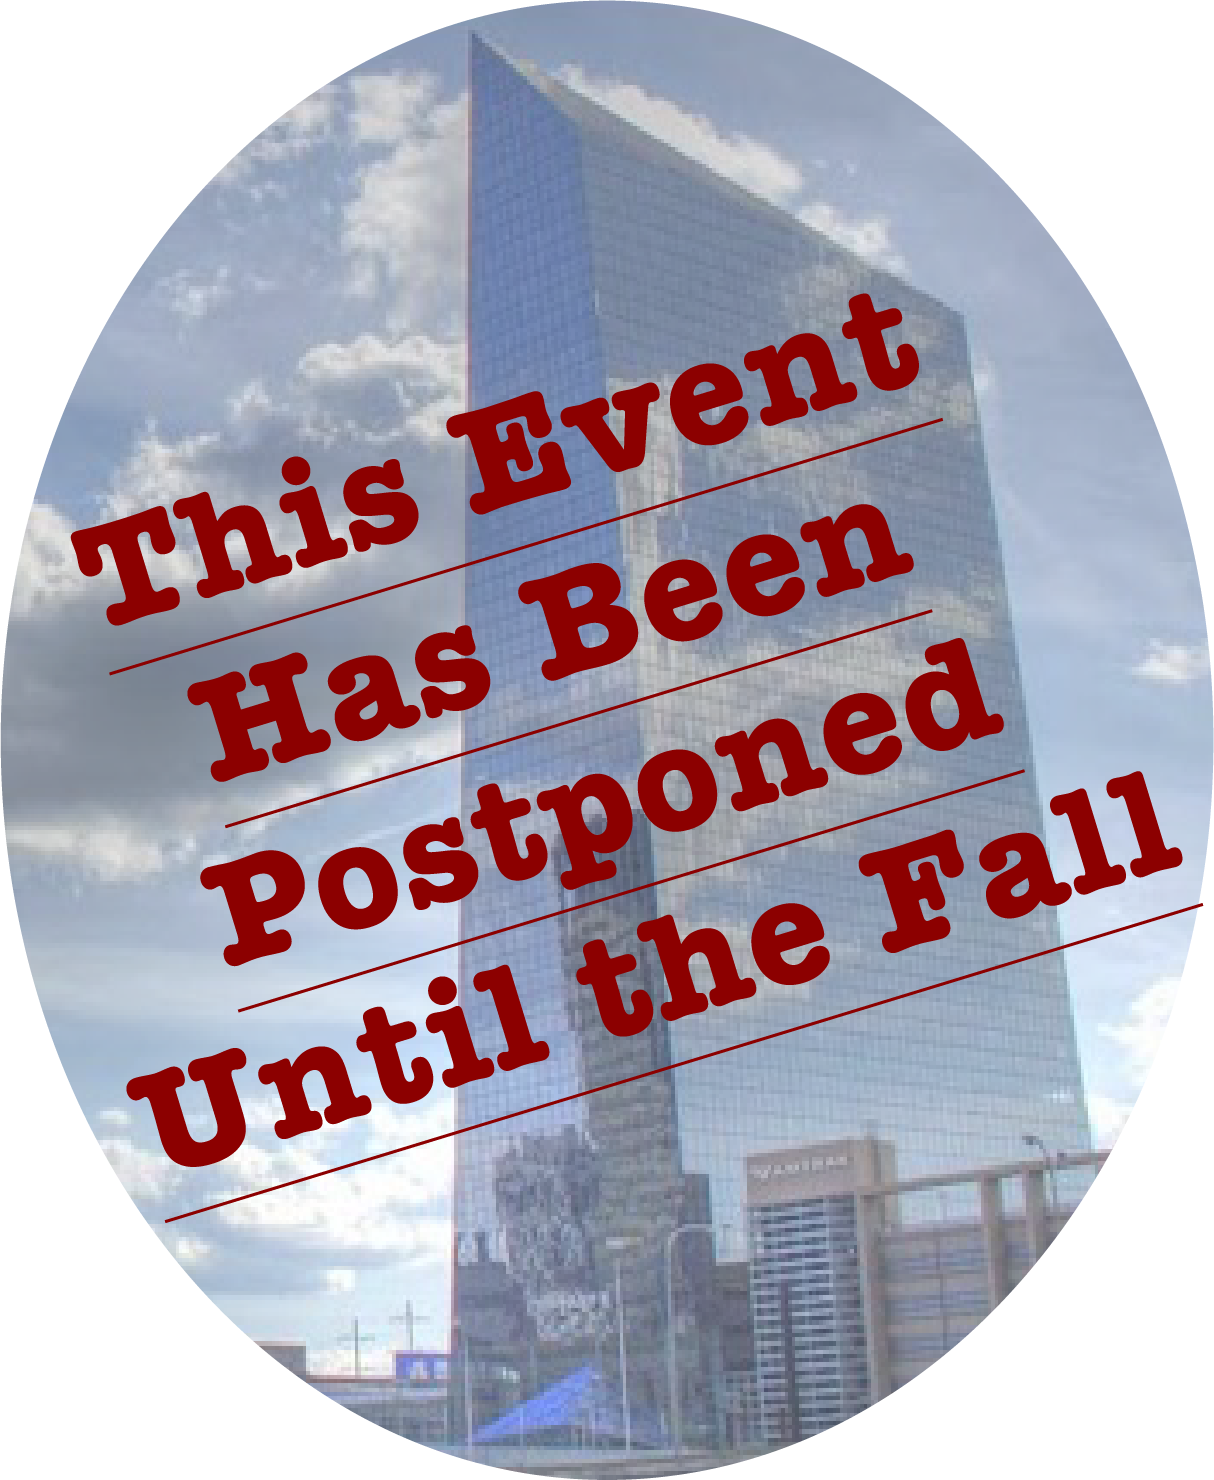 Image of Convene Ceter with words Postponed Until The fall superimposed on it